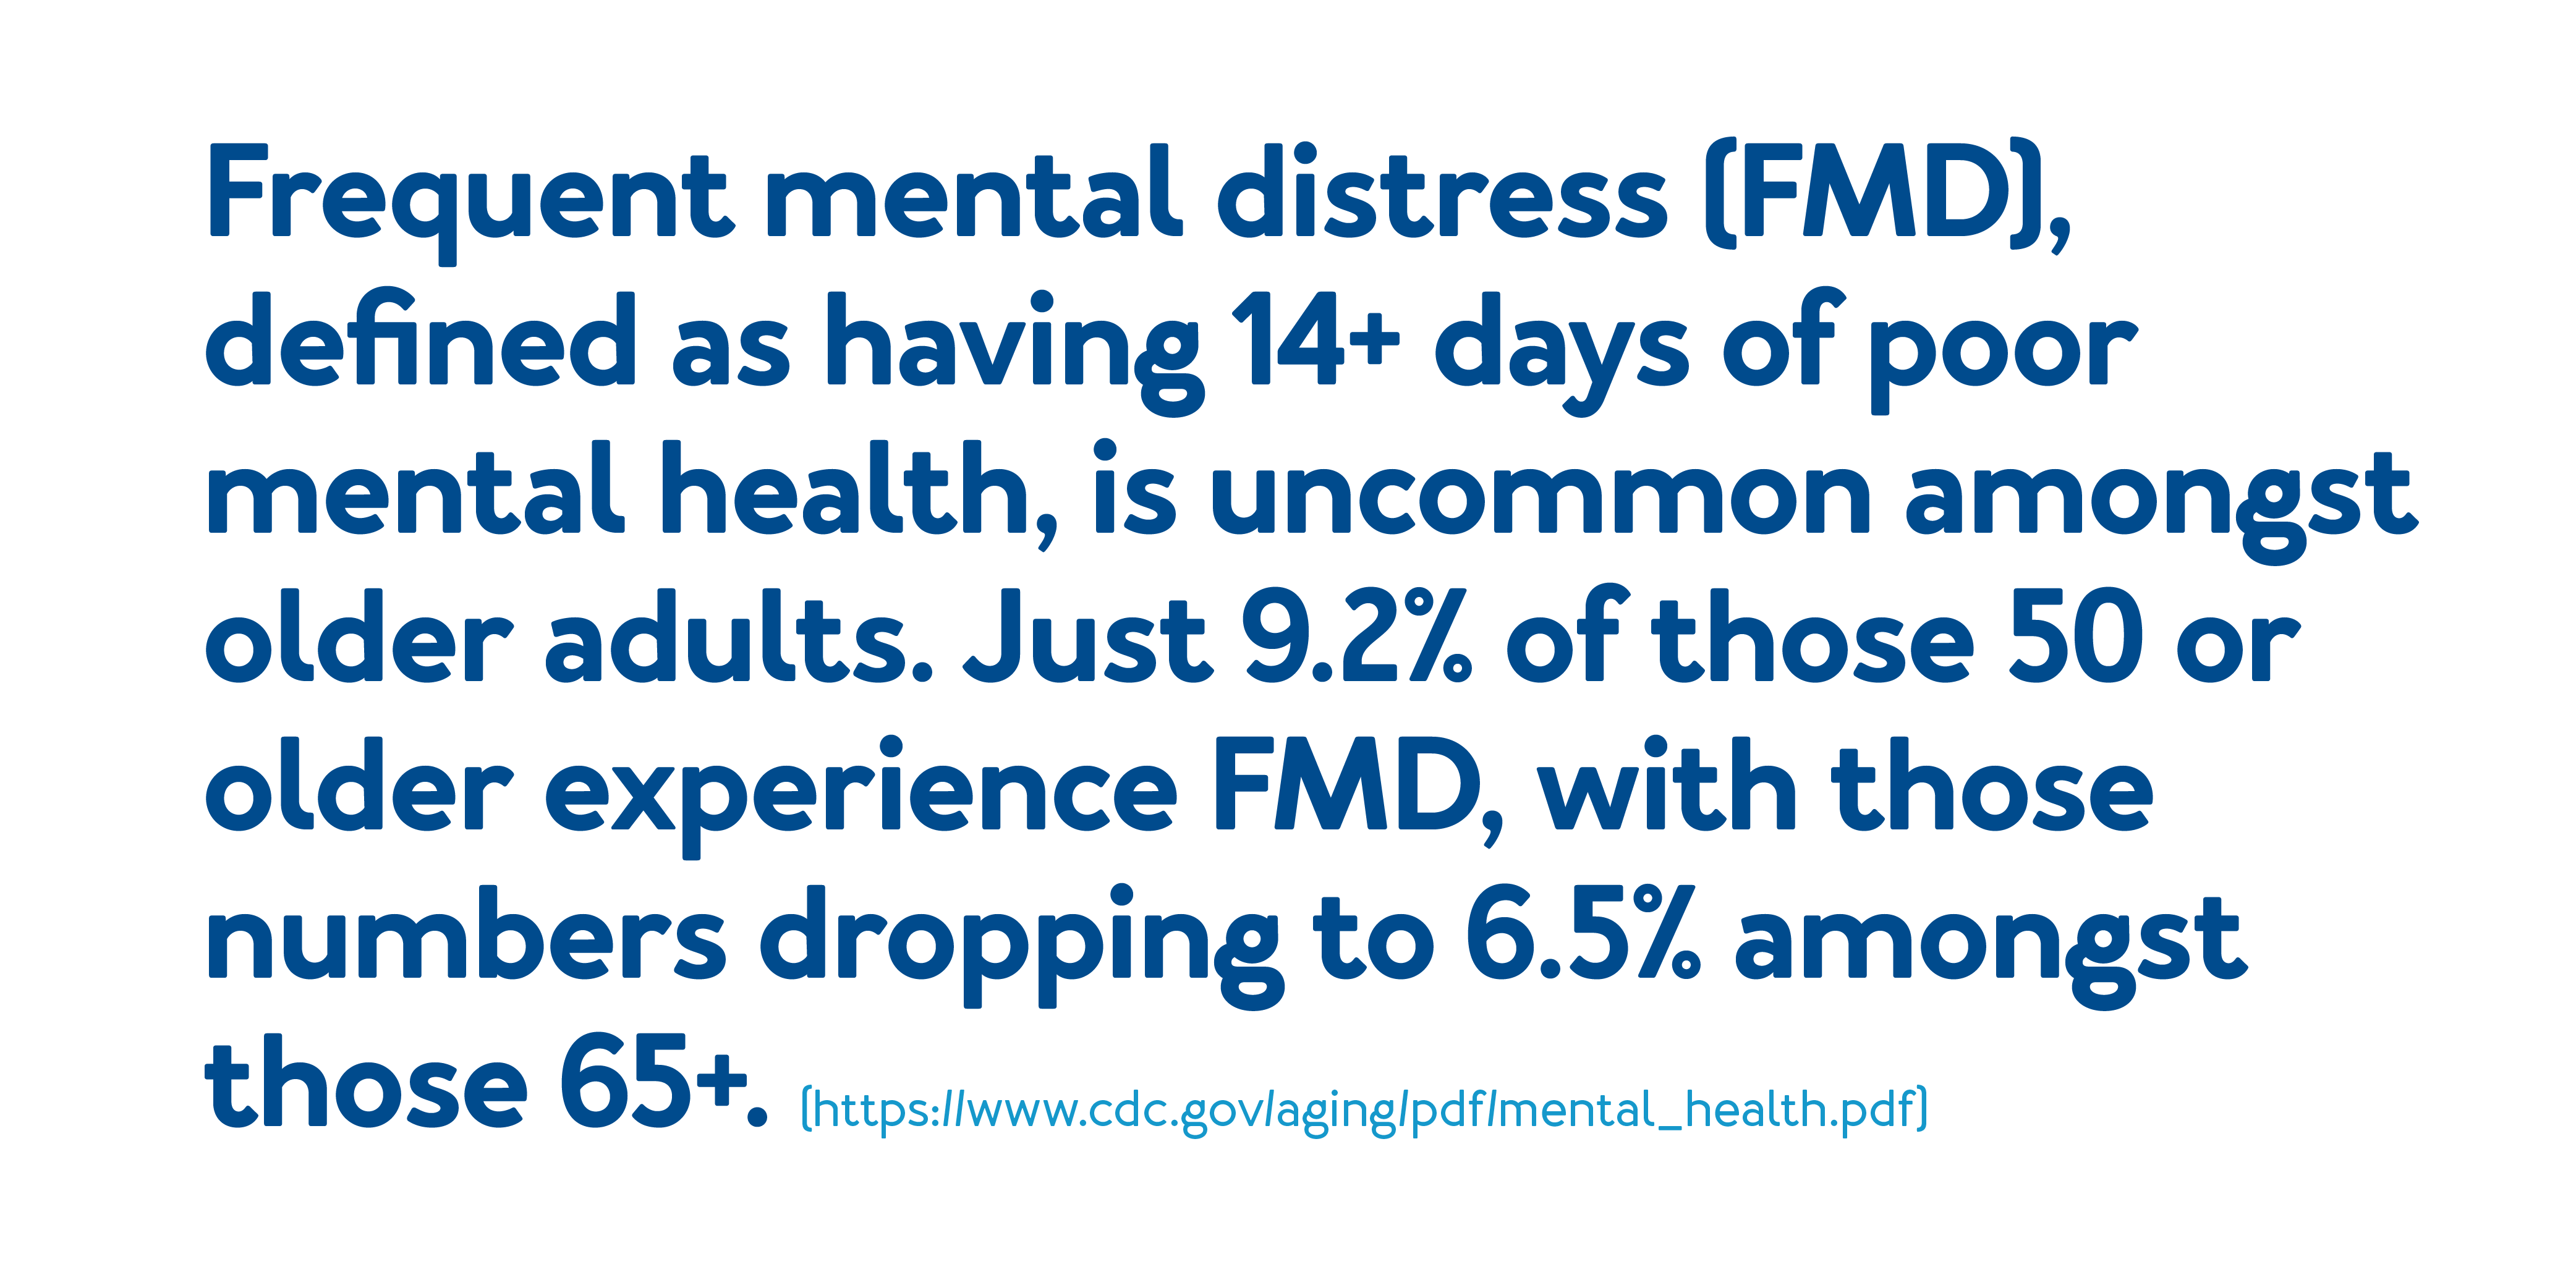 Frequent mental distress (FMD), defined as having 14+ days of poor mental health, is uncommon amongst older adults. Just 9.2% of those 50 or older experience FMD, with those numbers dropping to 6.5% amongst those 65+.